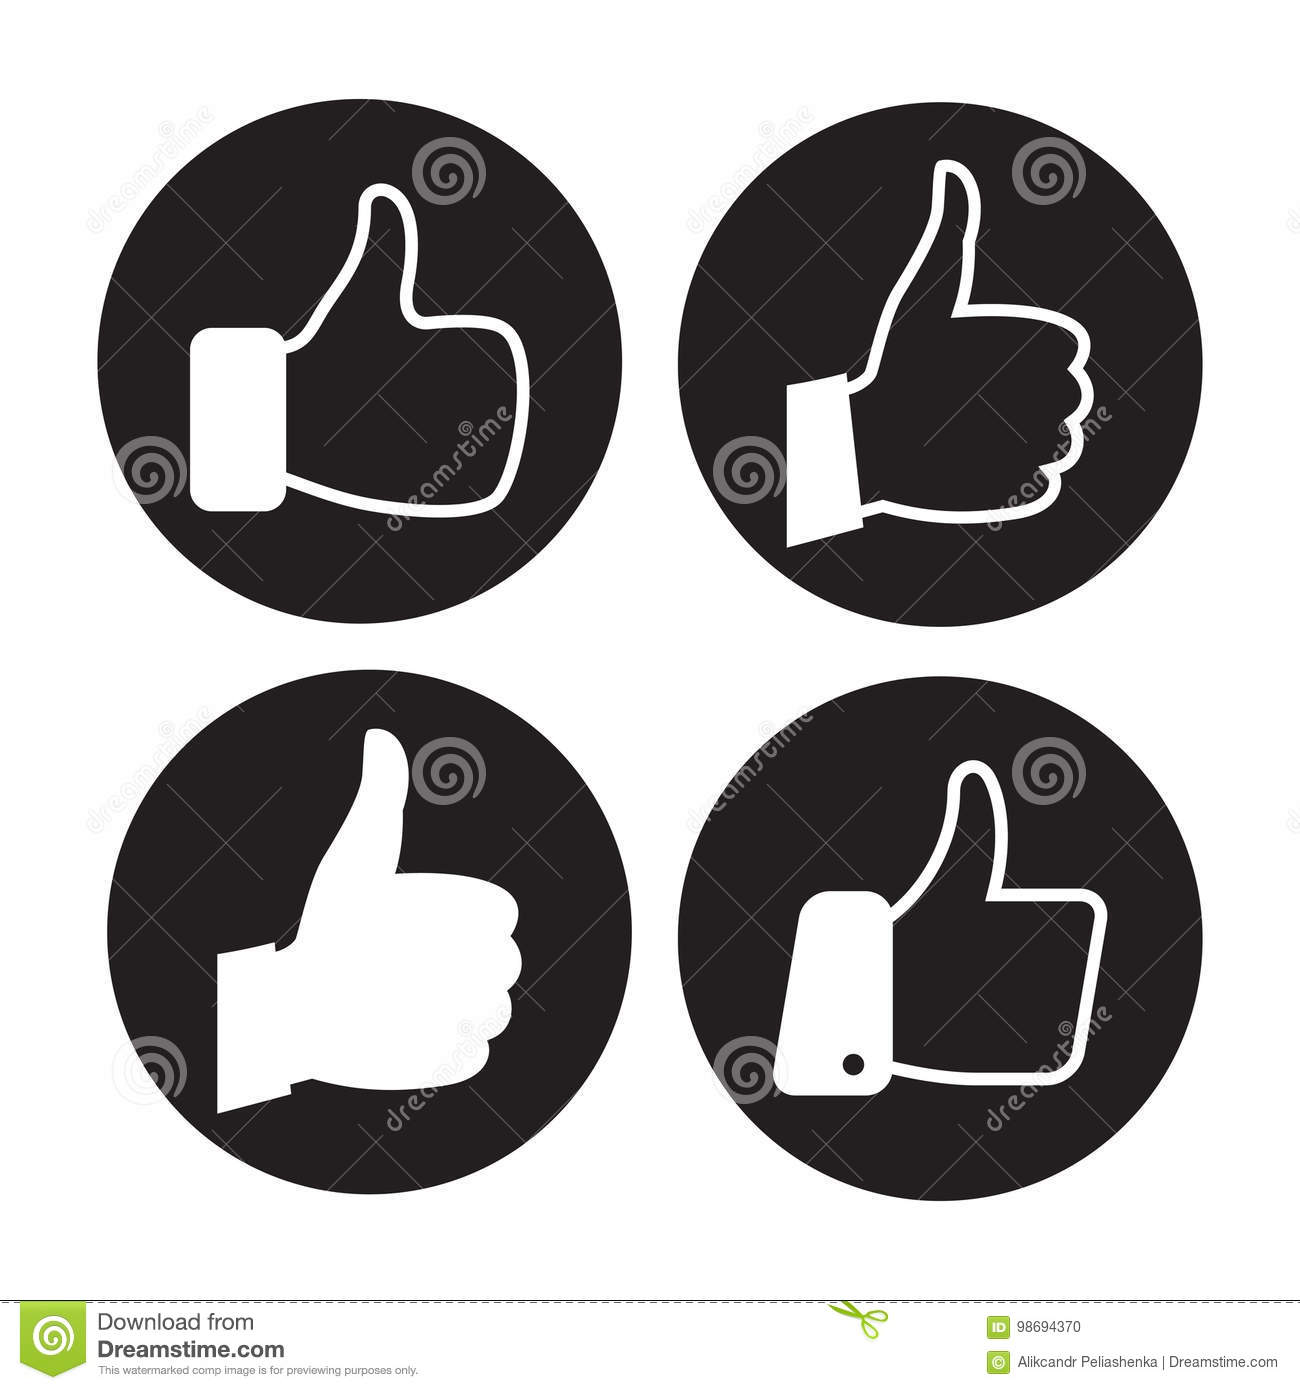 Thumb icons set